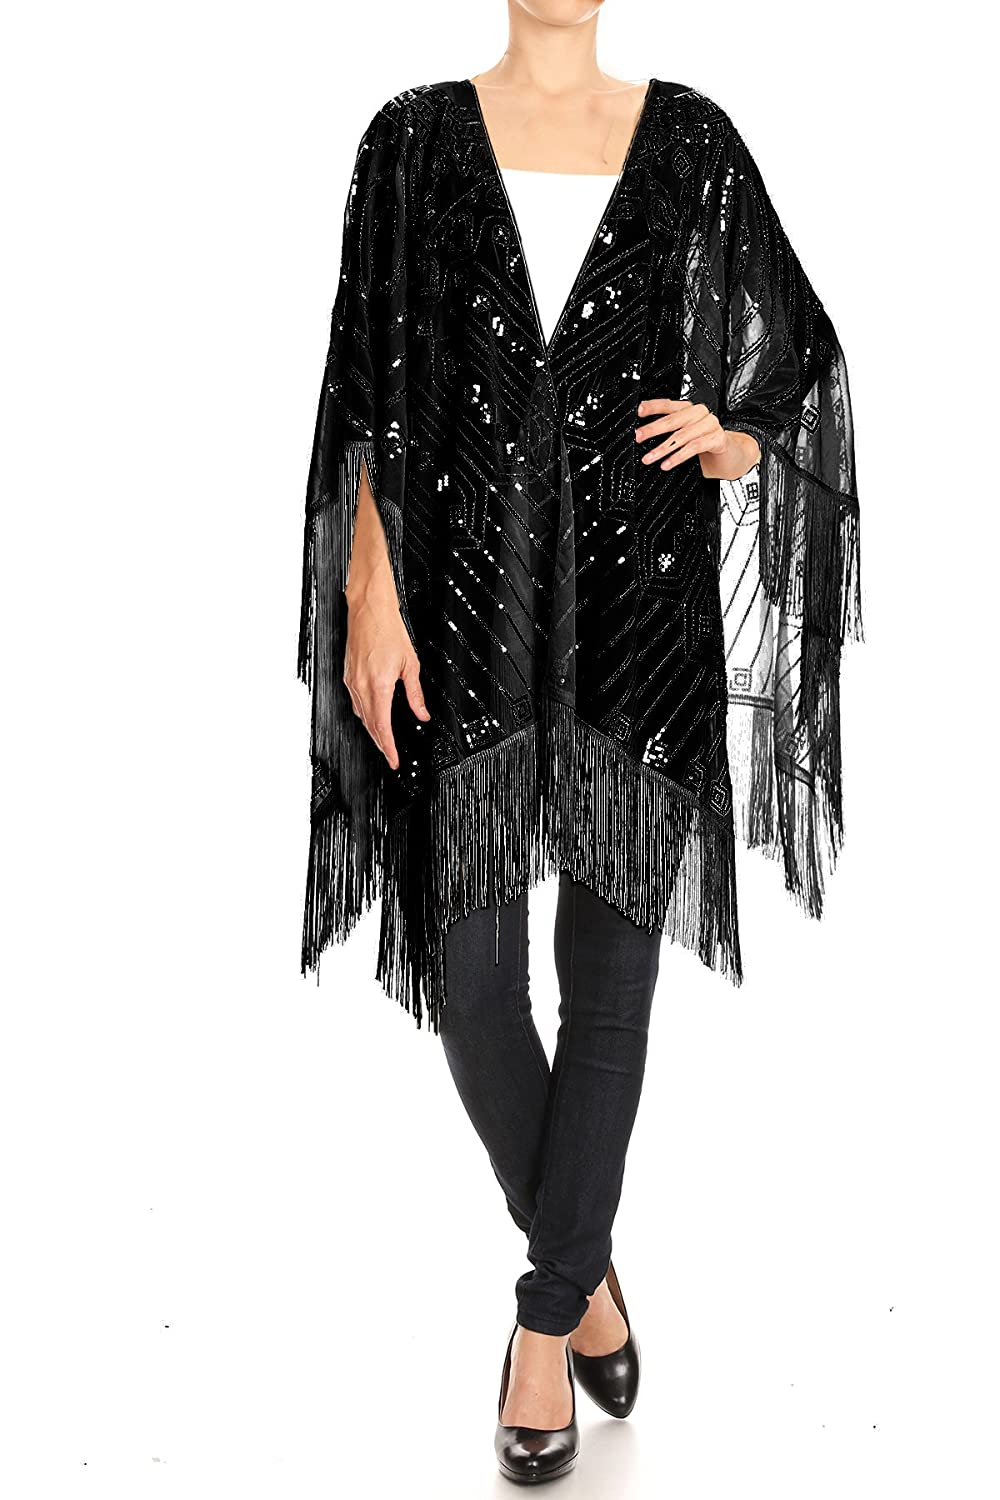 Downton Abbey Costumes Ideas Anna-Kaci Womens Oversized Hand Beaded and Sequin Evening Shawl Wrap with Fringe $26.90 AT vintagedancer.com